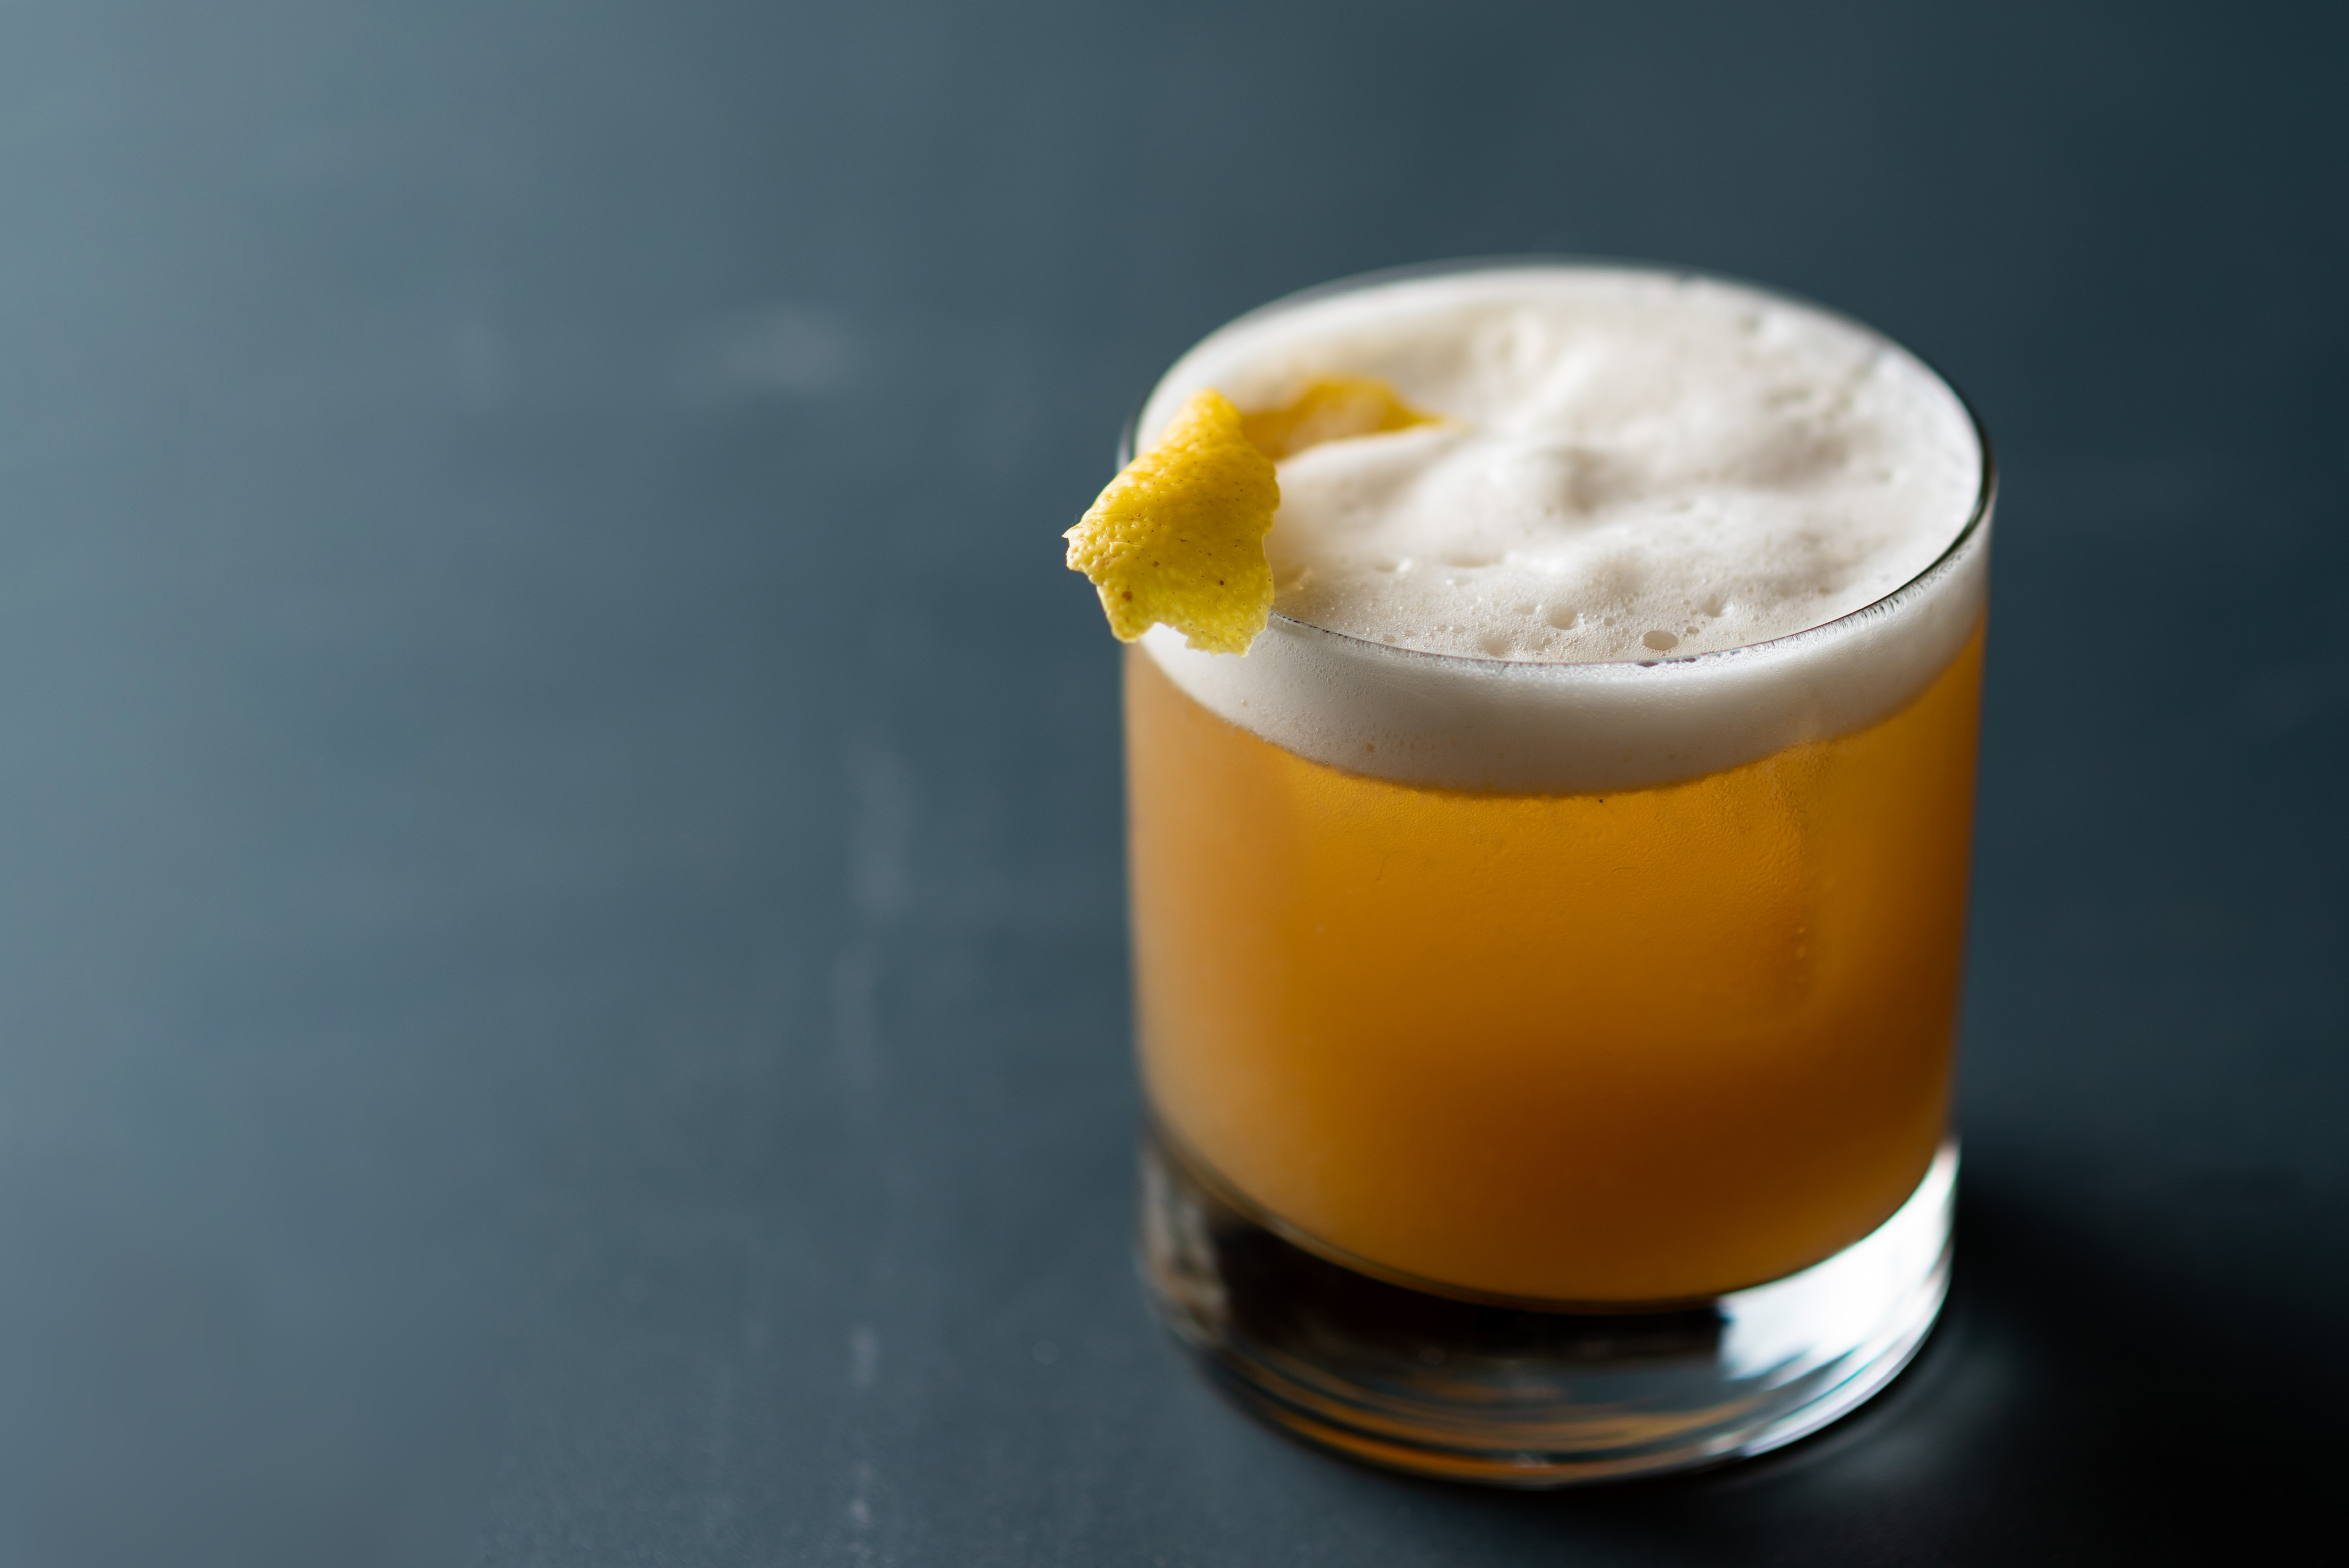 A short tumbler sits on a dark table. Inside, a frothy whiskey sour complete with lemon wedge is ready for drinking.